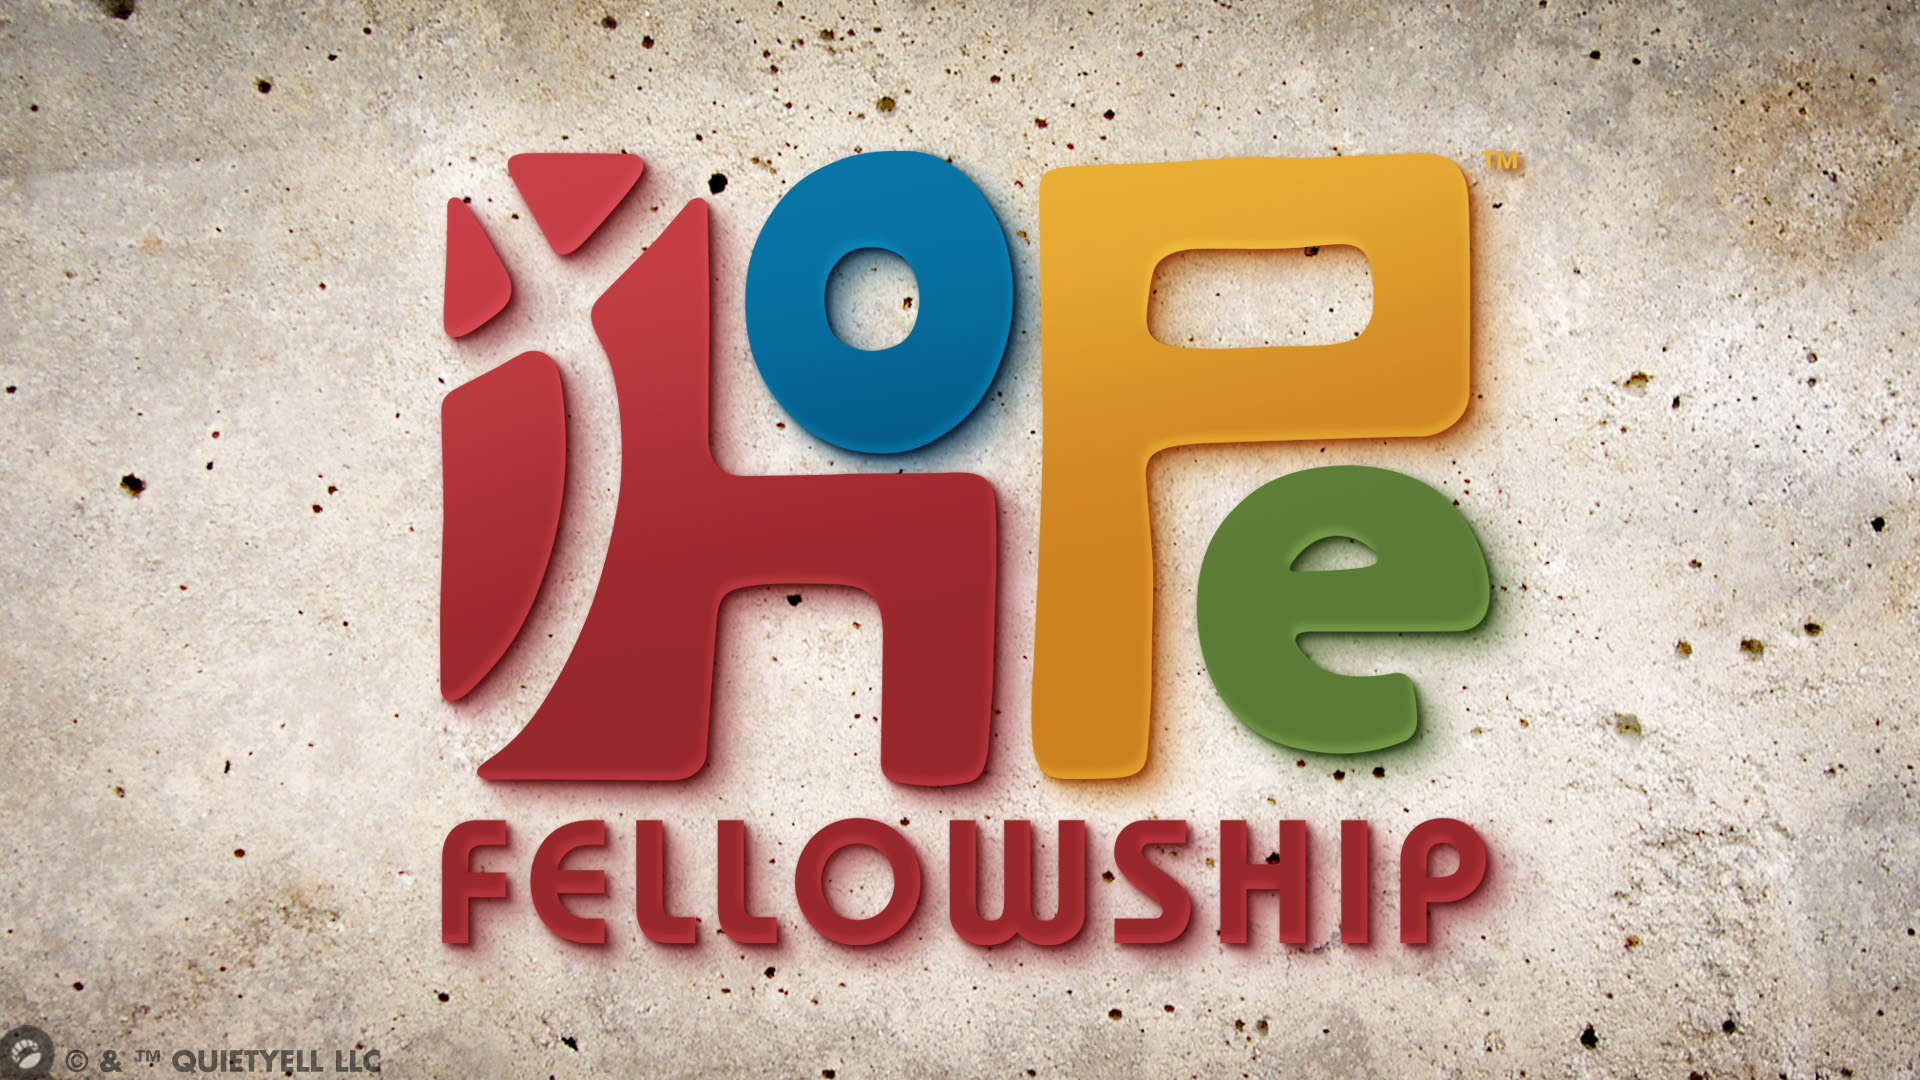 quietyell_branding_full_hopefellowship_01